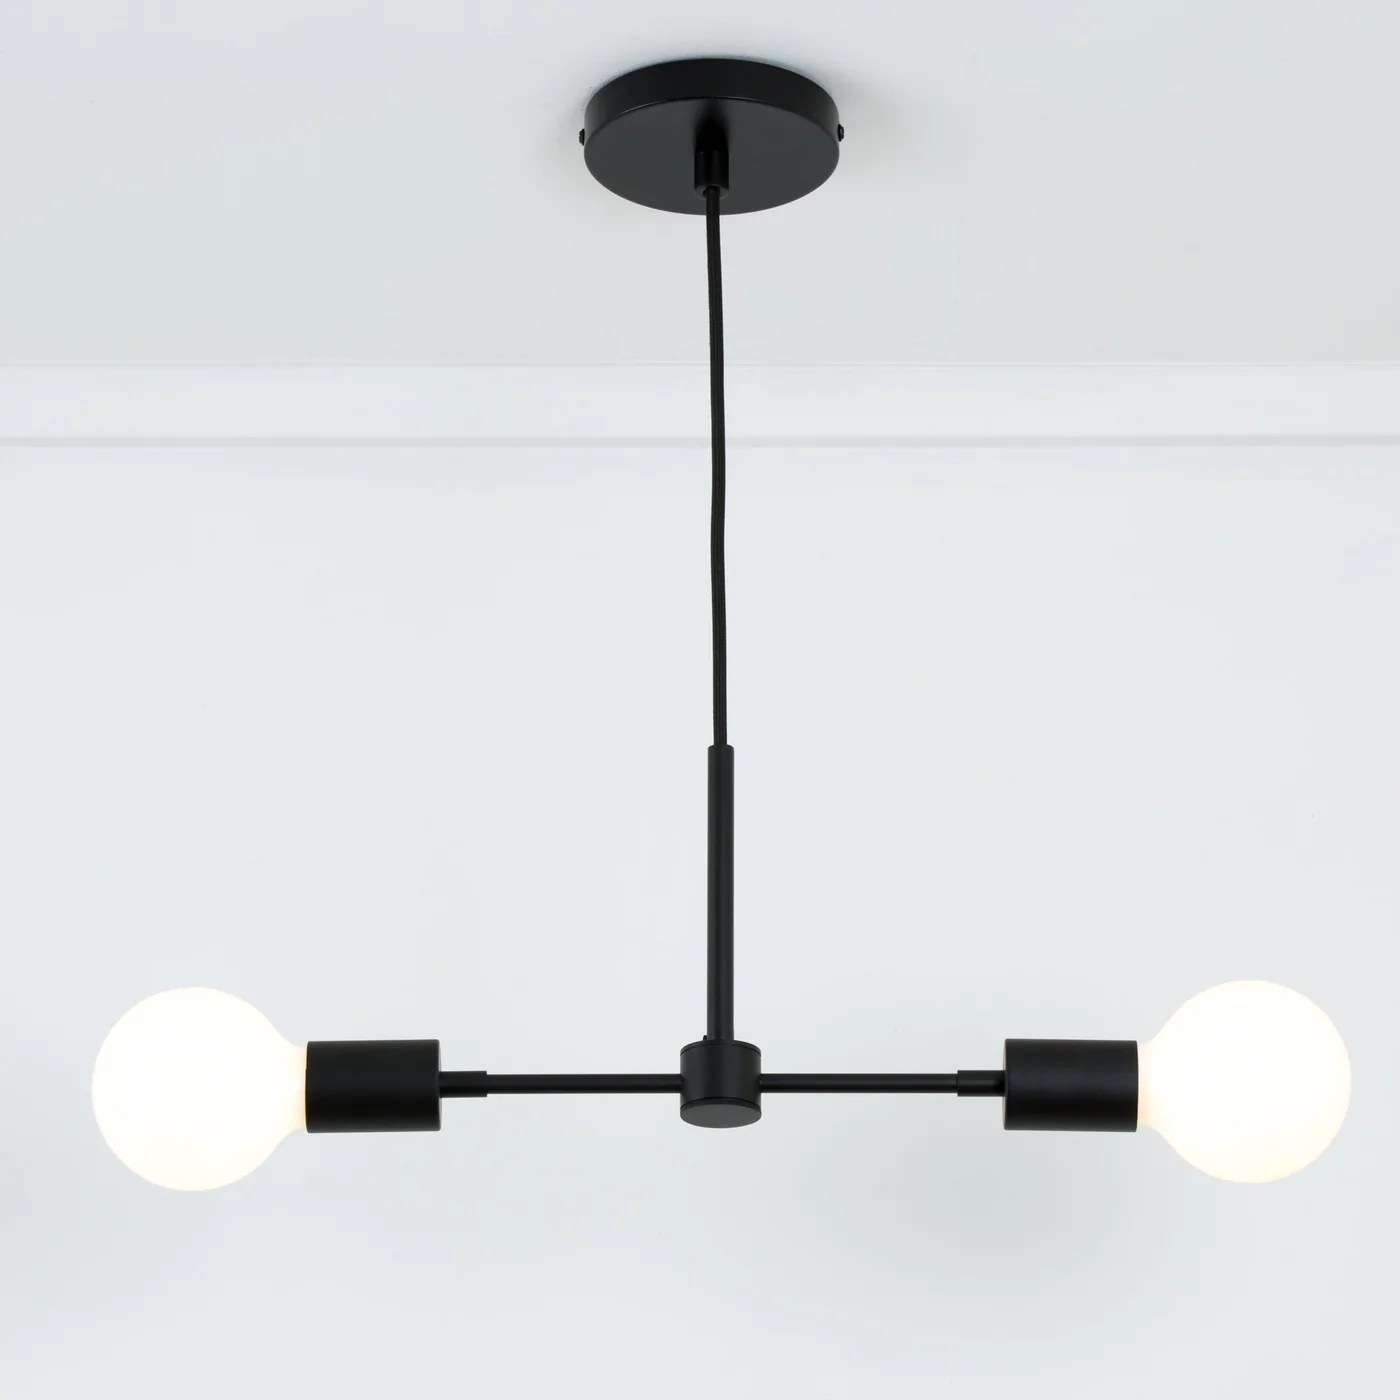 hight resolution of pendant light fixture google patents on wiring led light fixtures wiring diagram go